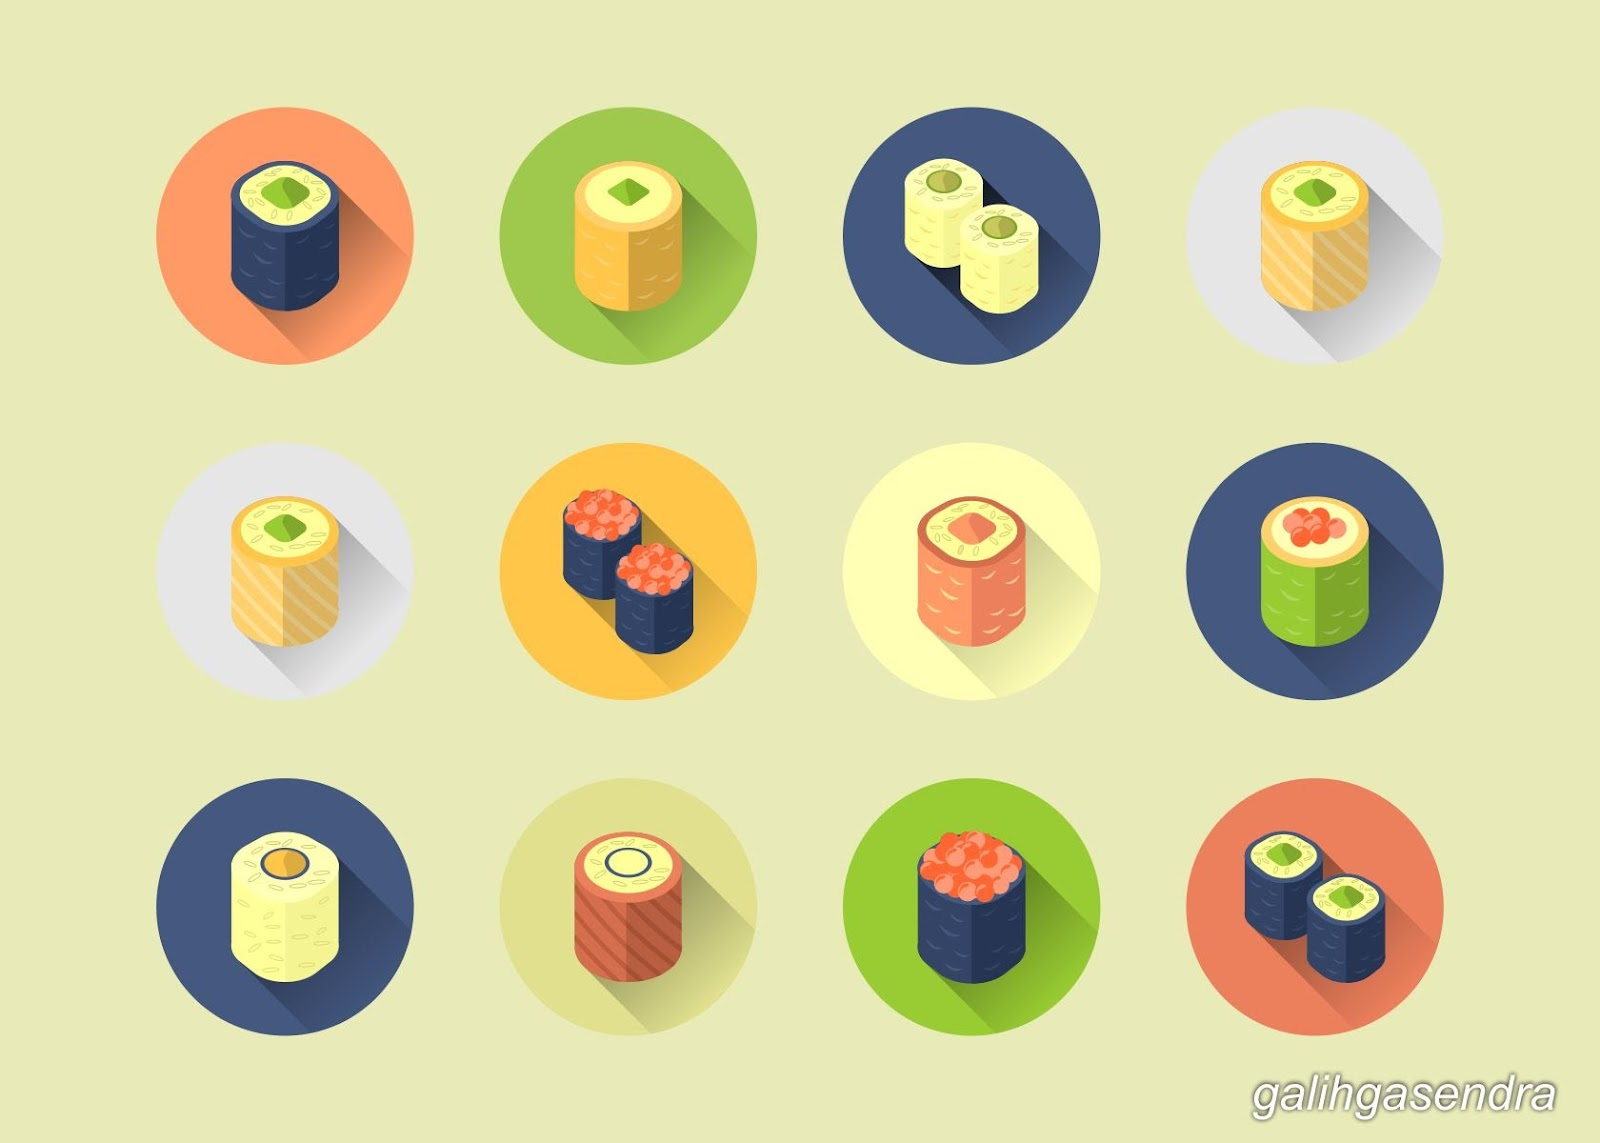 CorelDraw Tutorial - How to Create a Flat Design Rolled Sushi Icon ...